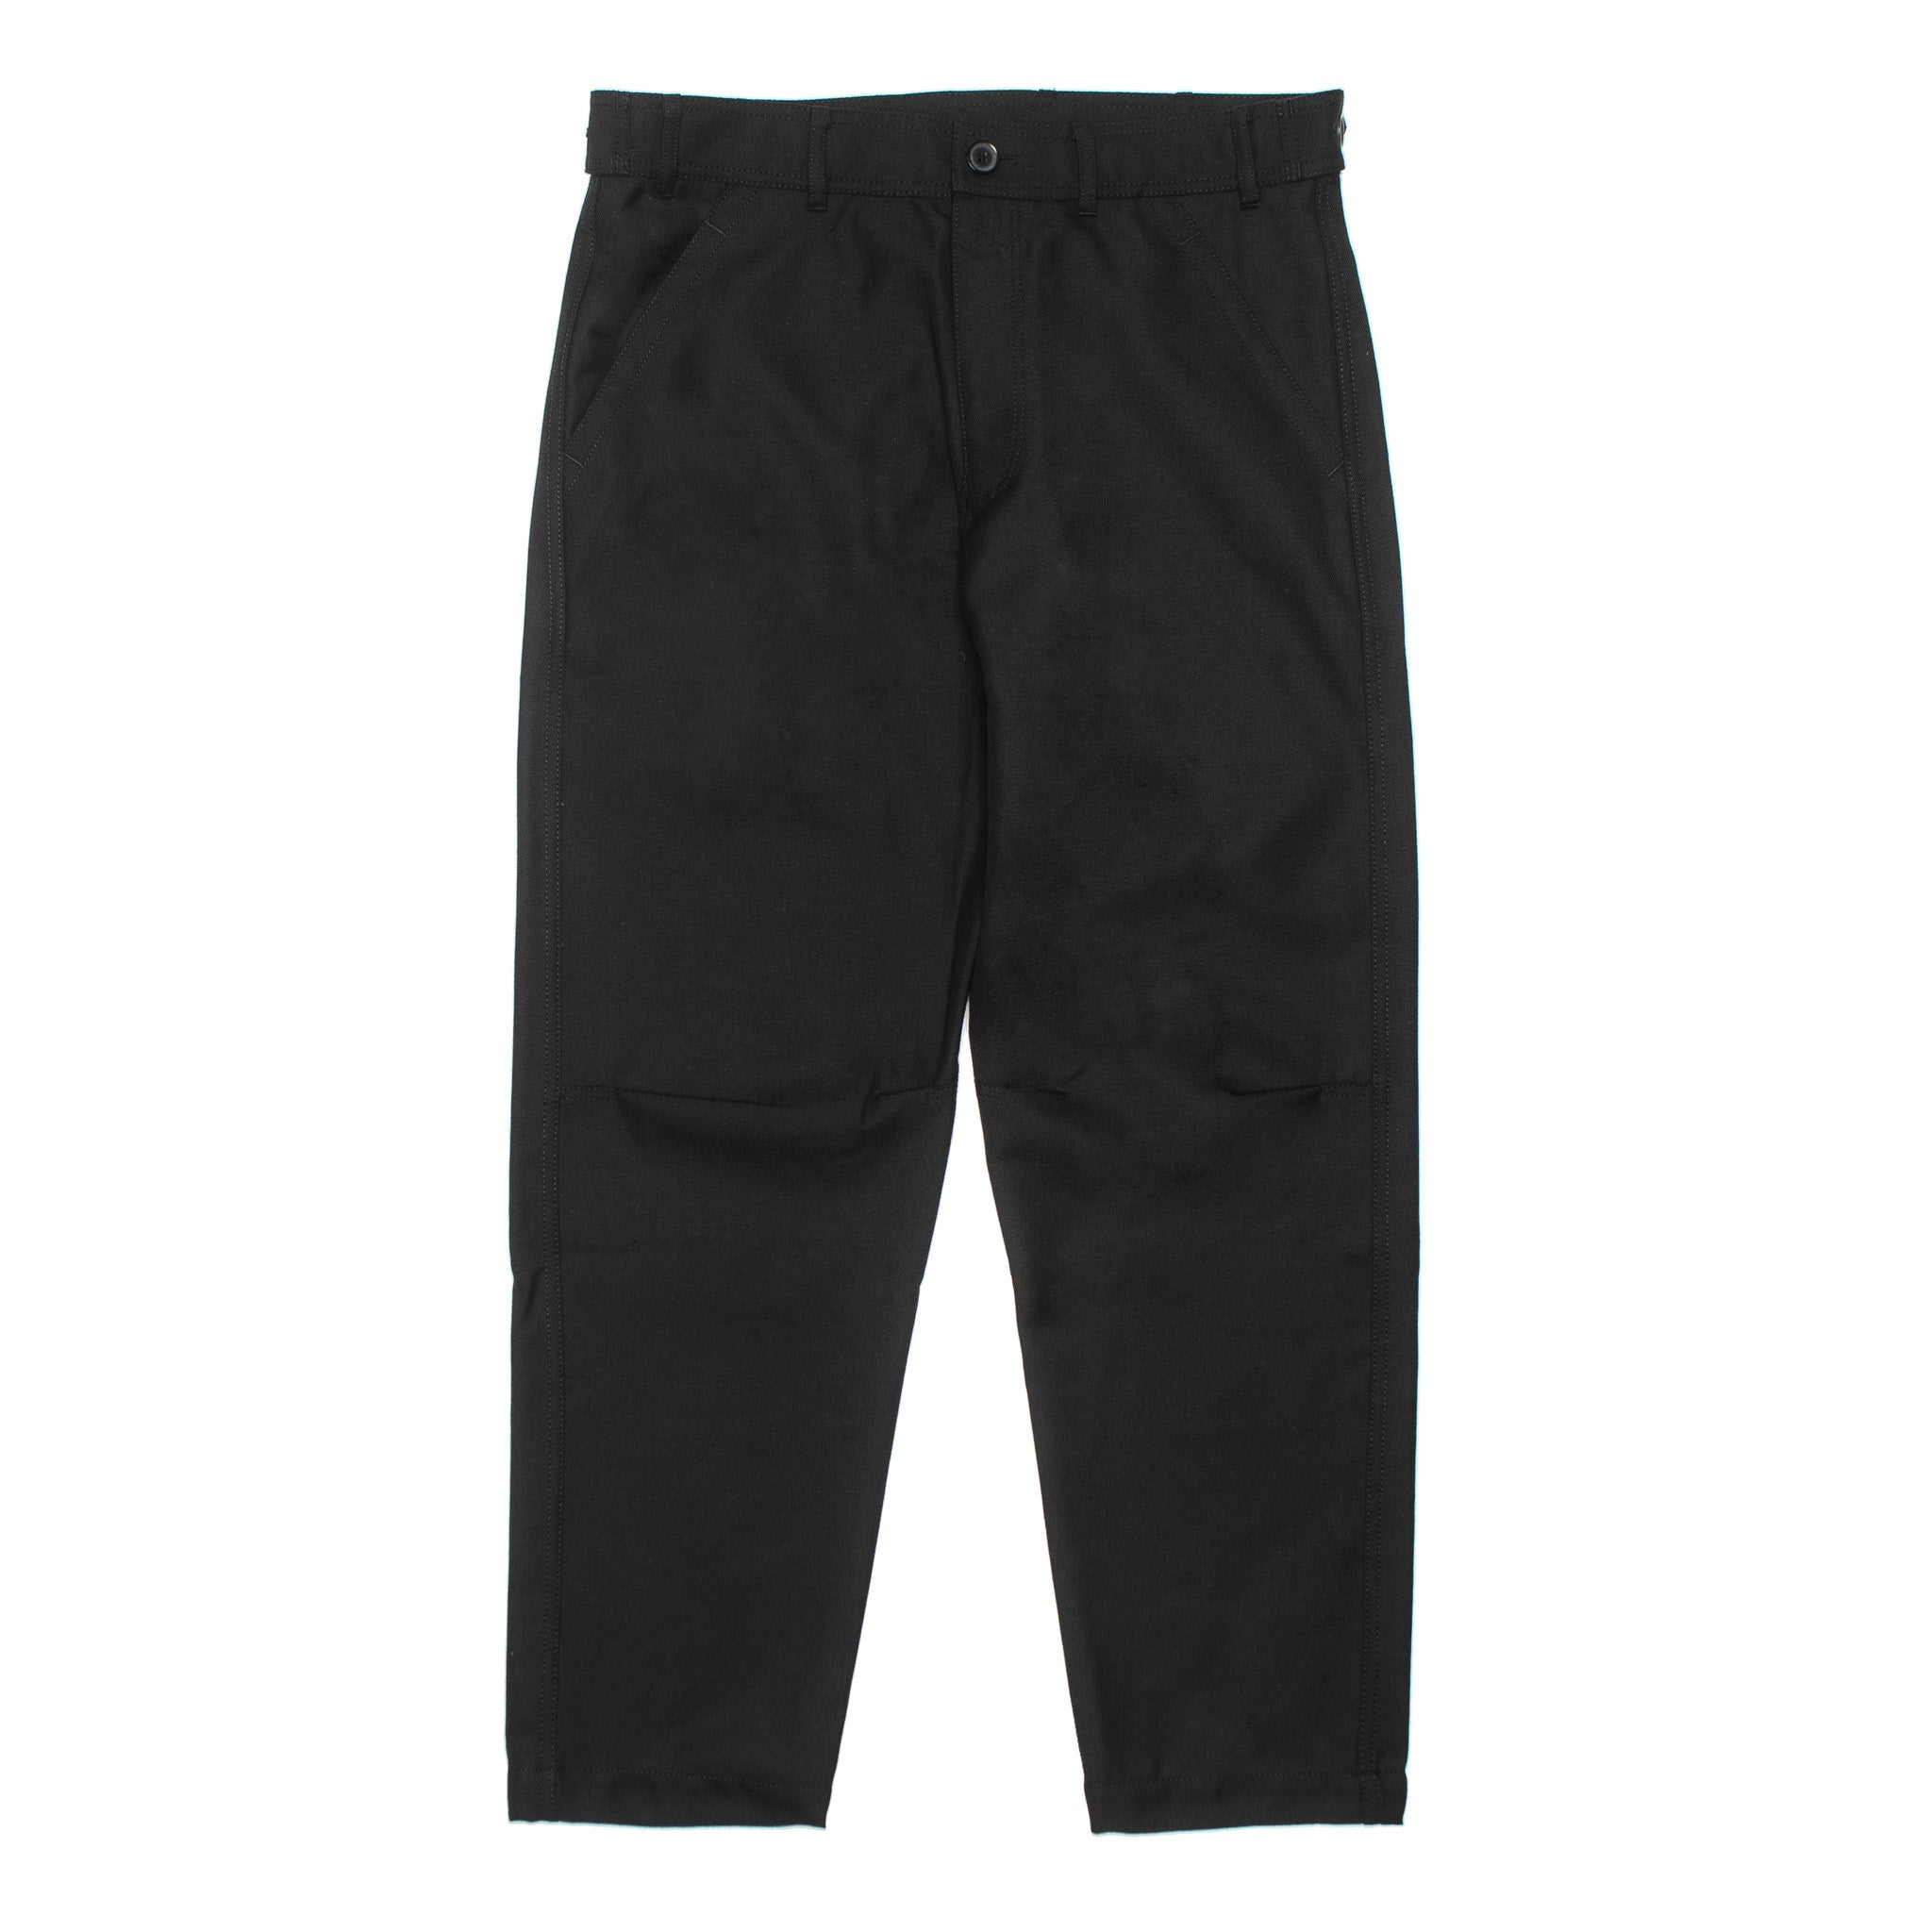 CDG SHIRT Wool Twill Pants W27130 Black